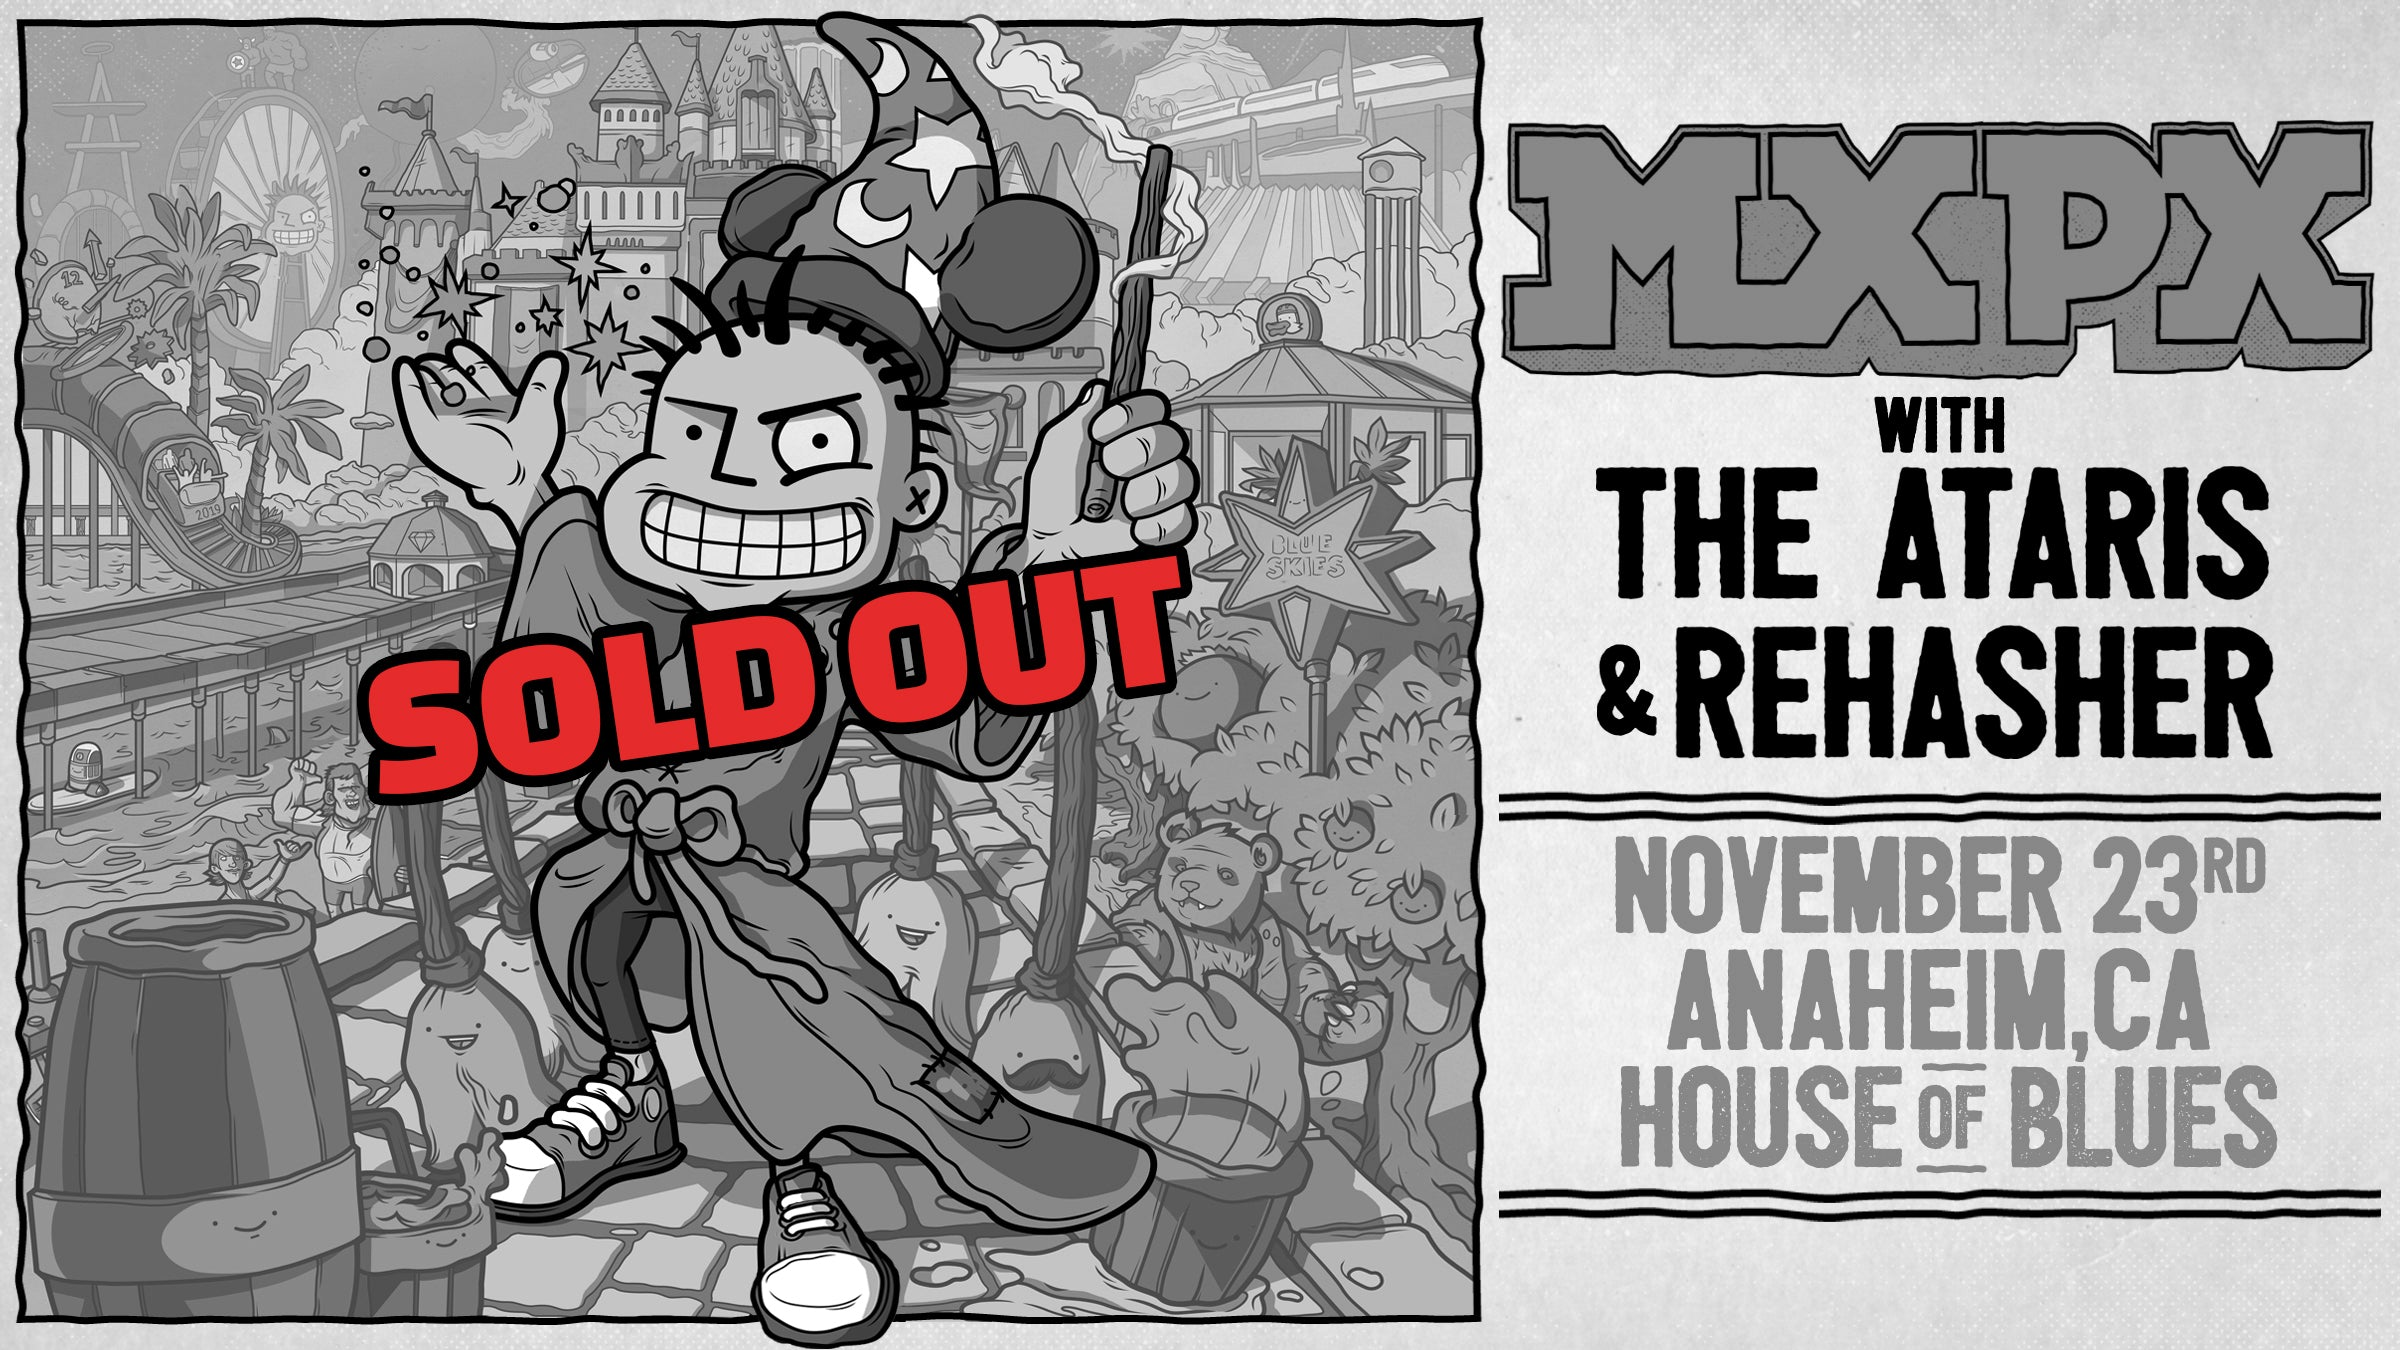 Saturday, NOVEMBER 23rd - Anaheim, CA  - MxPx with The Ataris & Rehasher